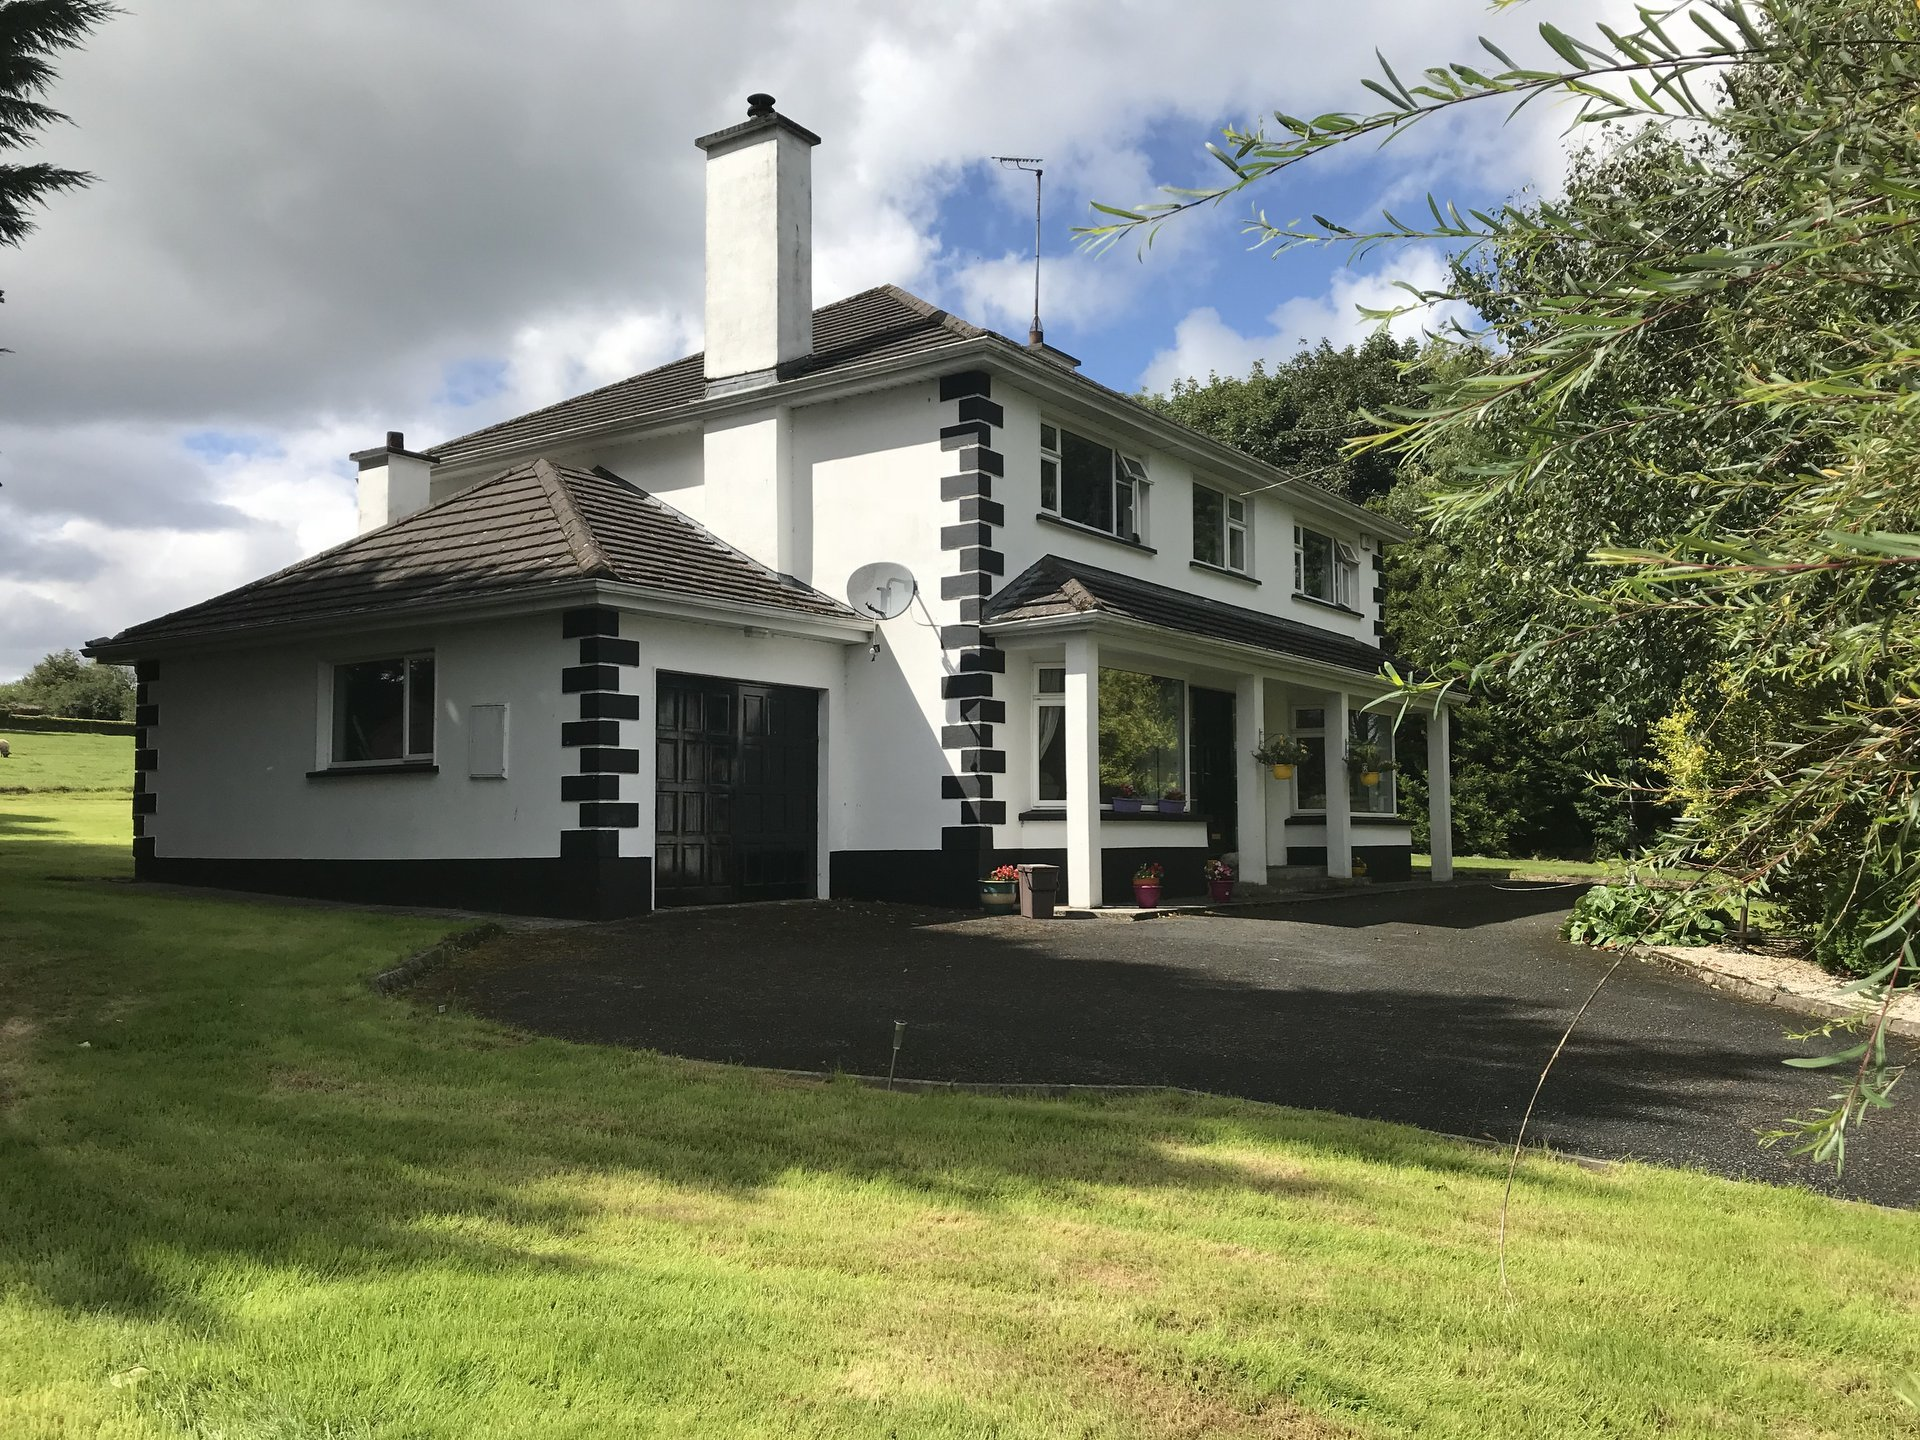 Upper Ferefad, Longford, Co Longford N39 P956